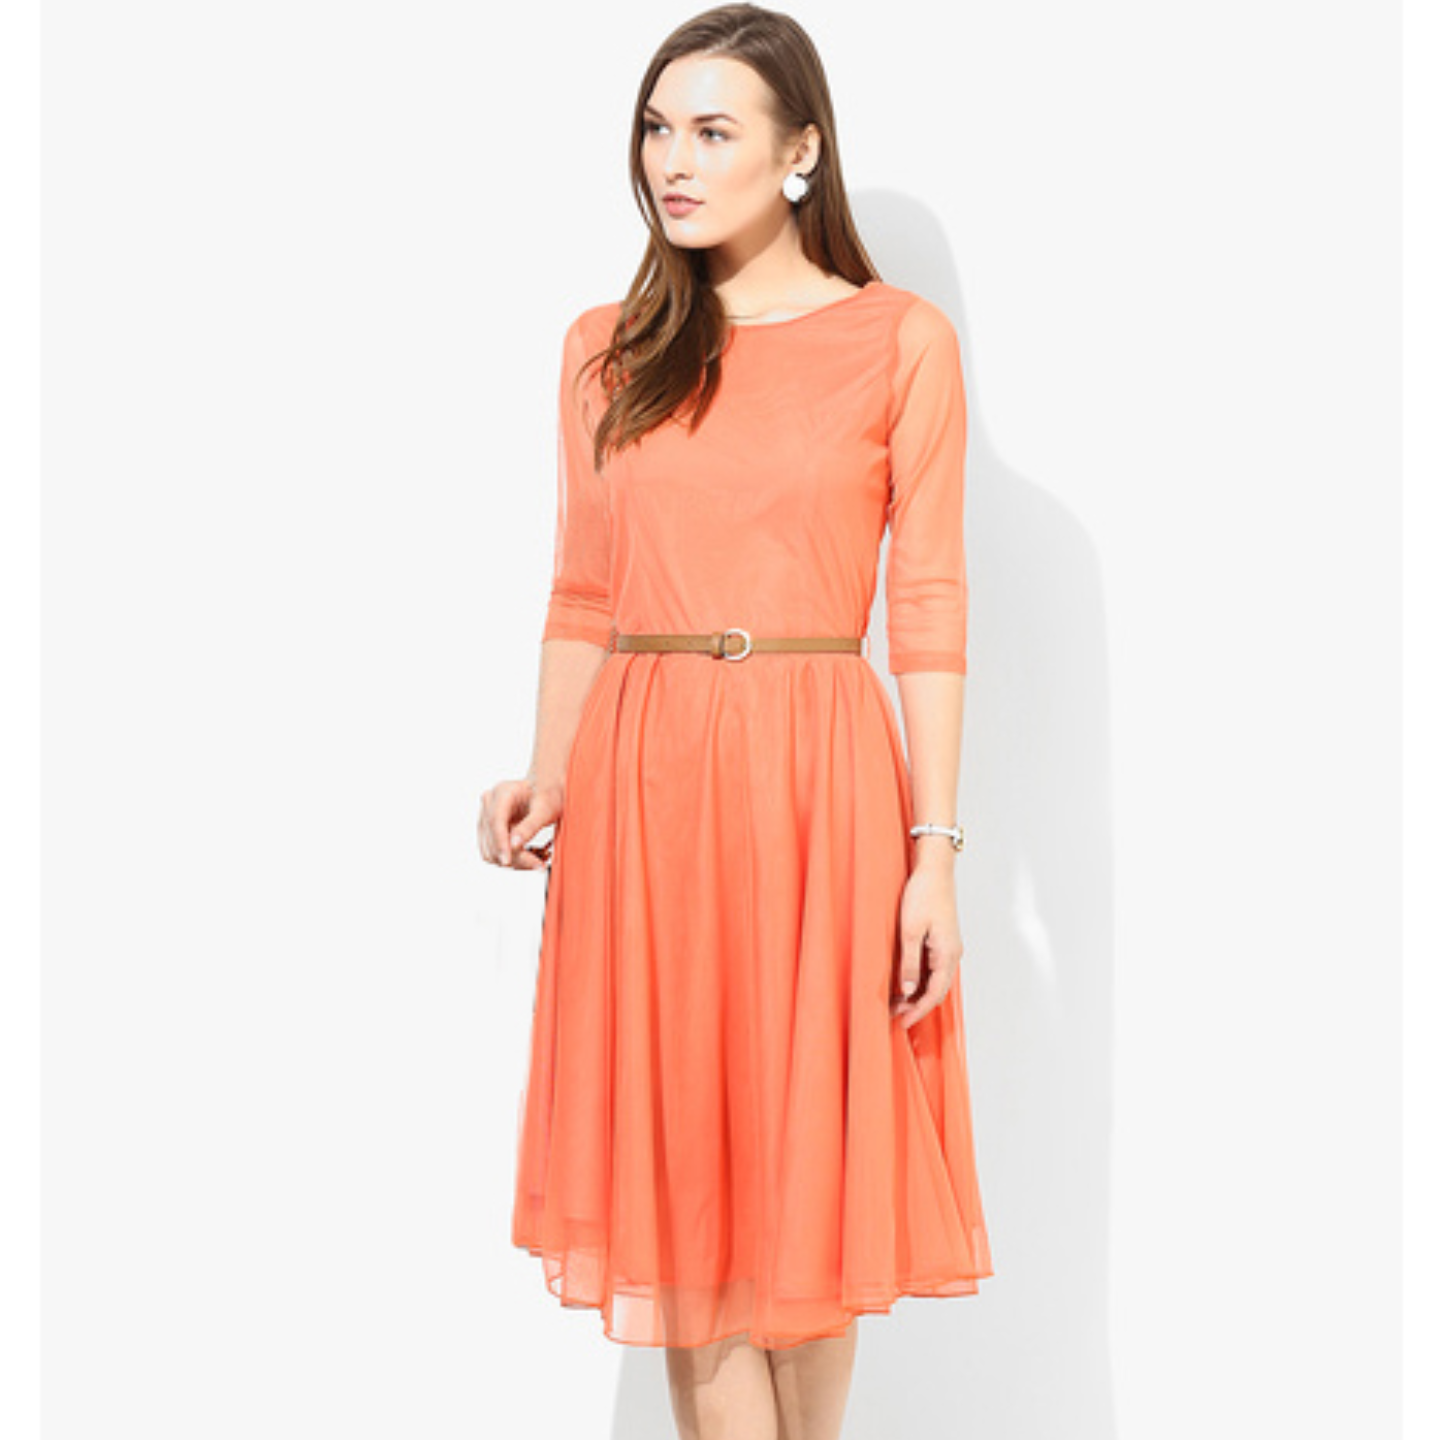 Fasdest Designer Orange Dress #Dmo02